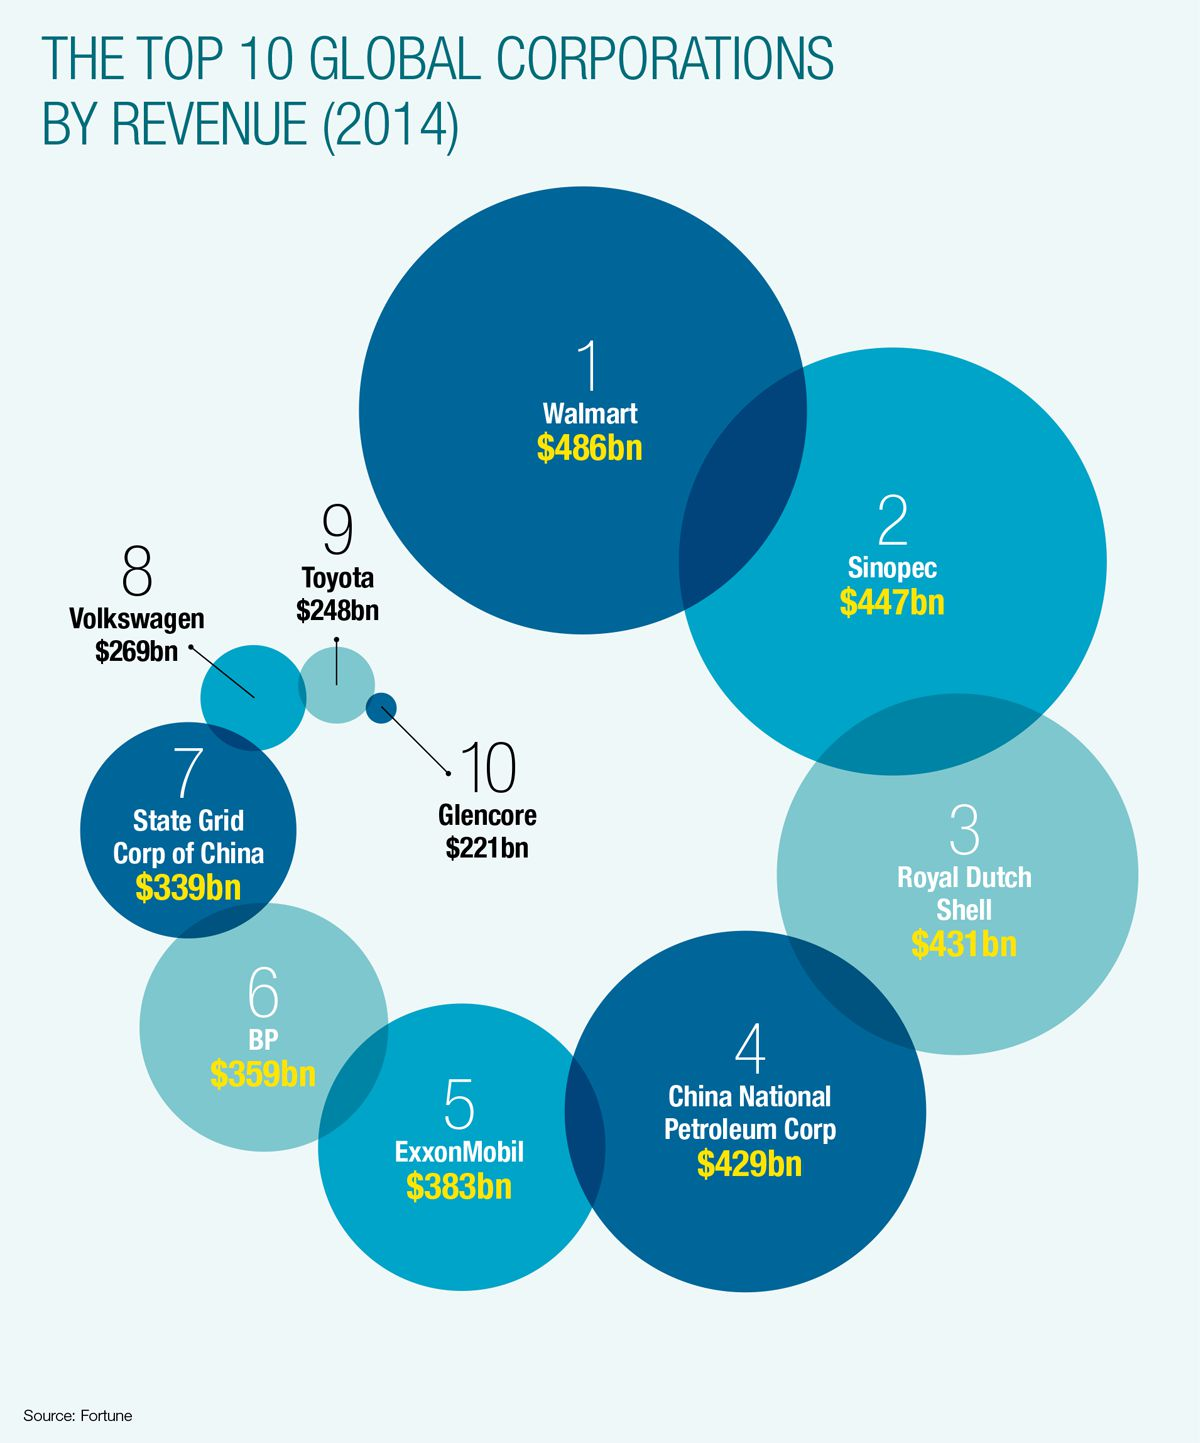 The top 10 global corporations by revenue